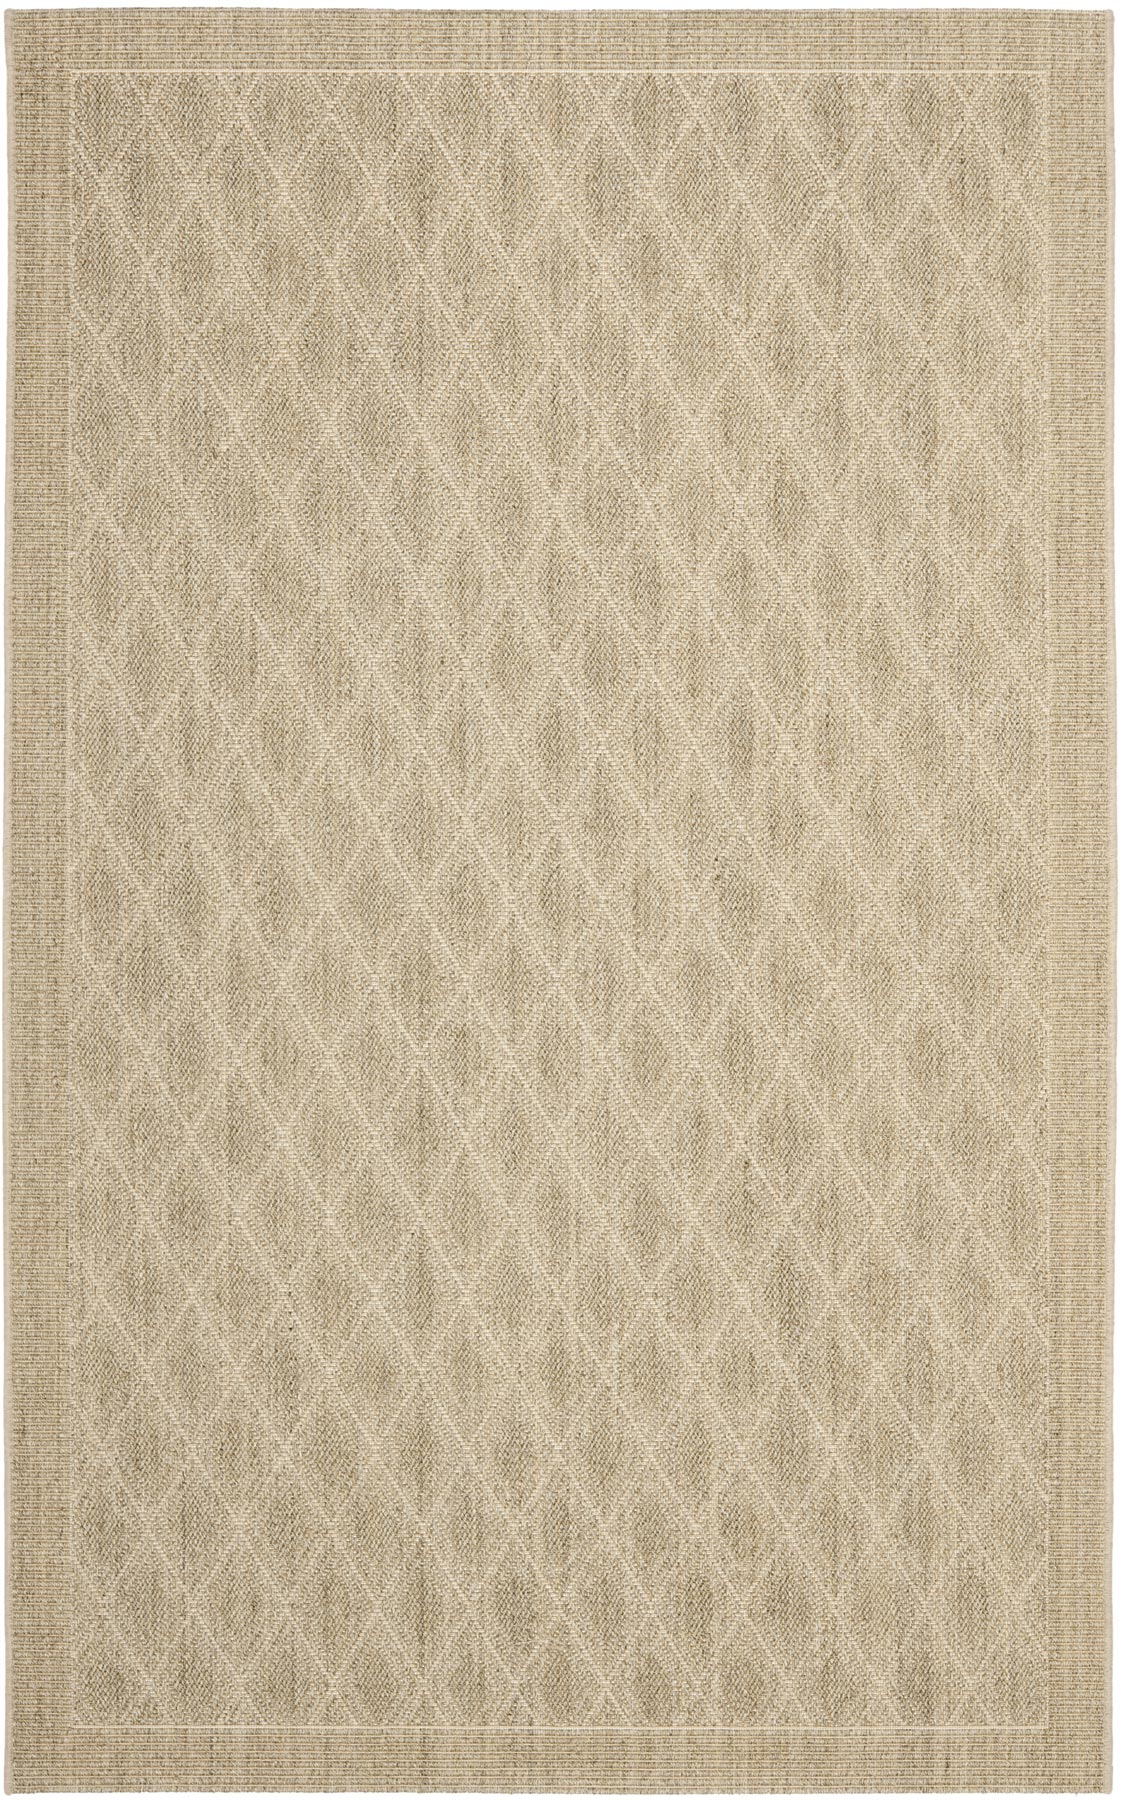 Rug Pab351a Palm Beach Area Rugs By Safavieh